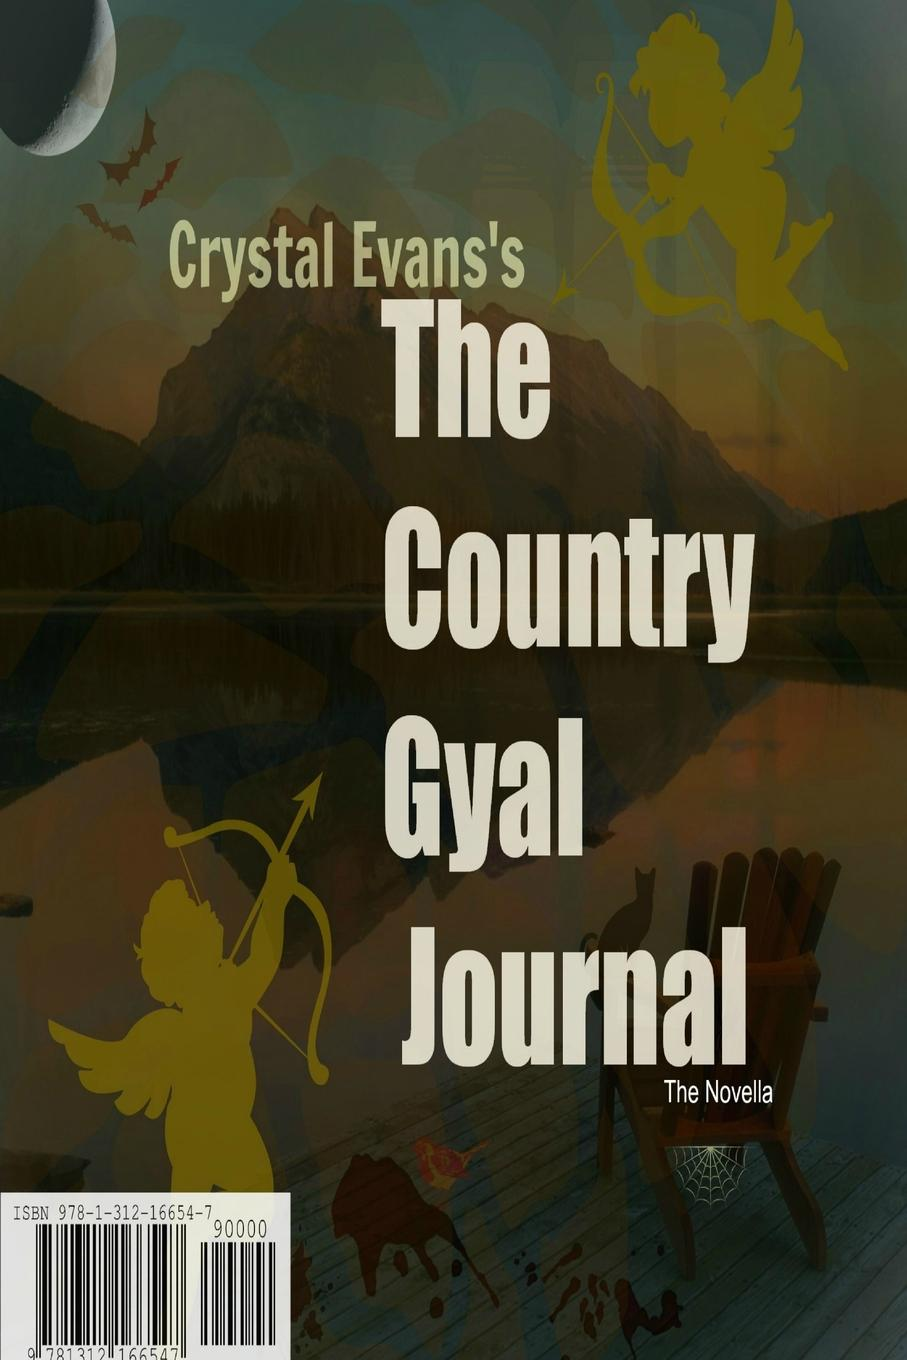 Crystal Evans The Country Gyal Journal